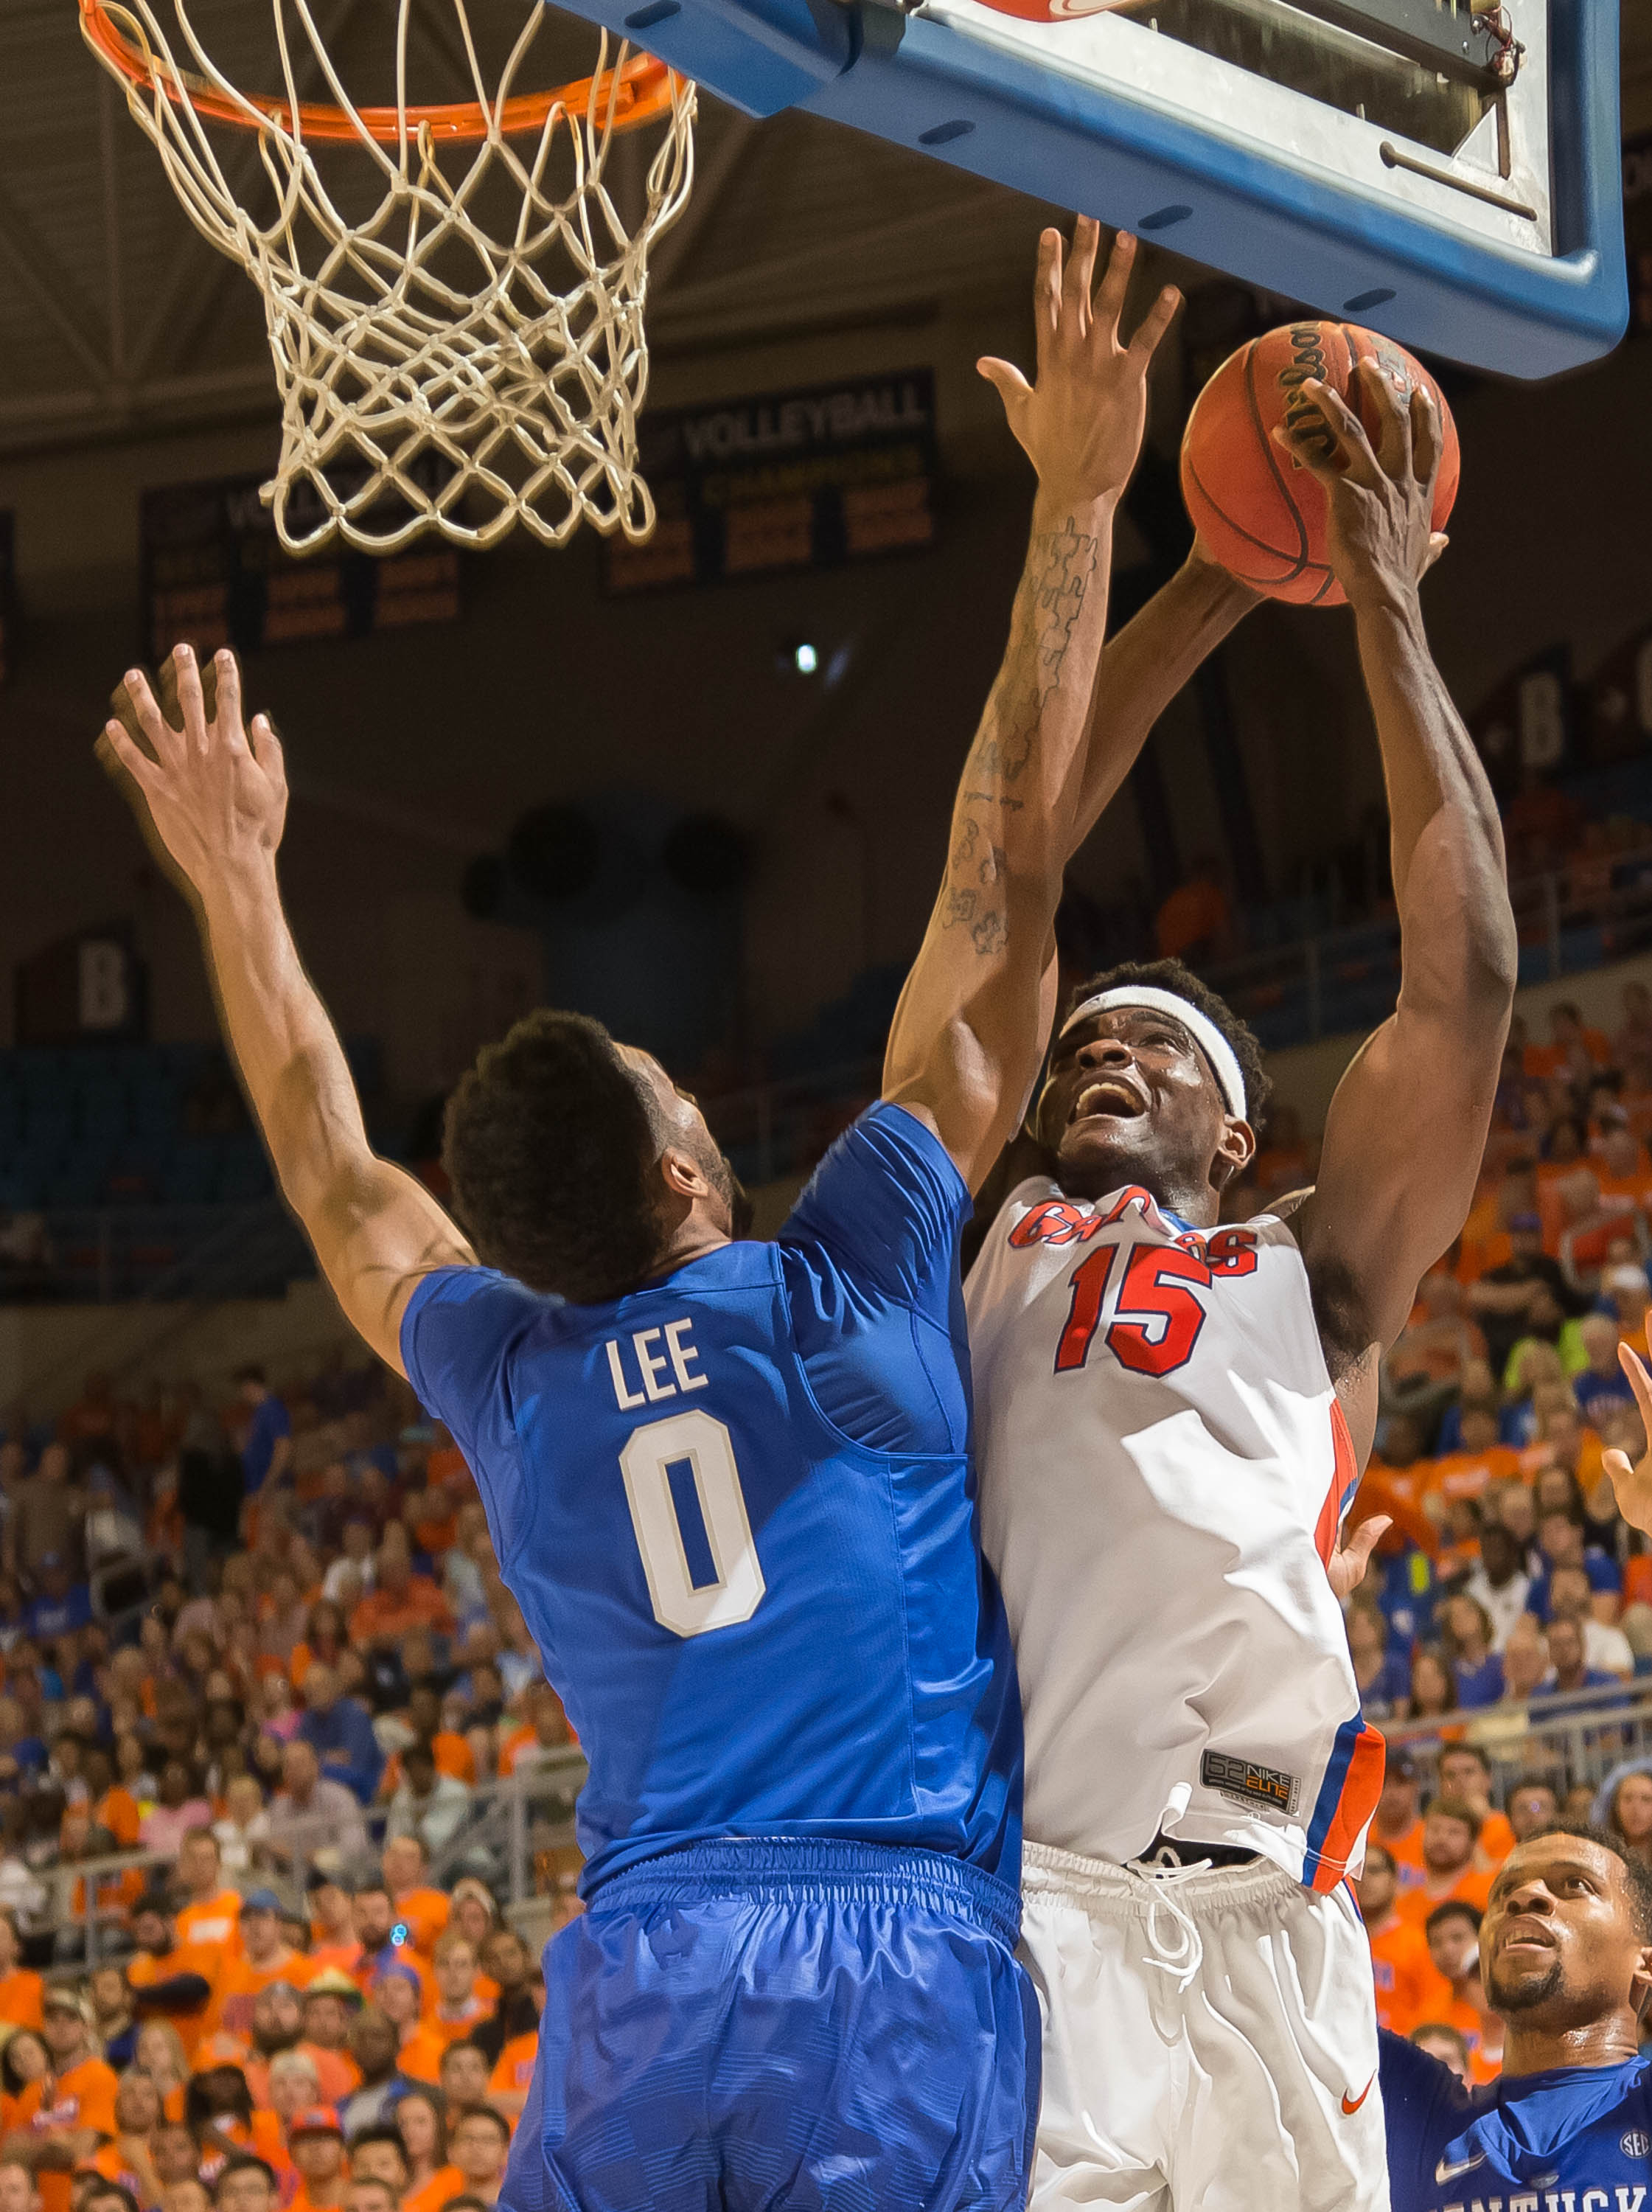 Florida center John Egbunu (15) shots a short jumper over Kentucky forward Marcus Lee (00) during the second half of an NCAA college basketball game in Gainesville, Fla., on Tuesday, March 1, 2016. Kentucky won 88-79. (AP Photo/Ronald Irby)